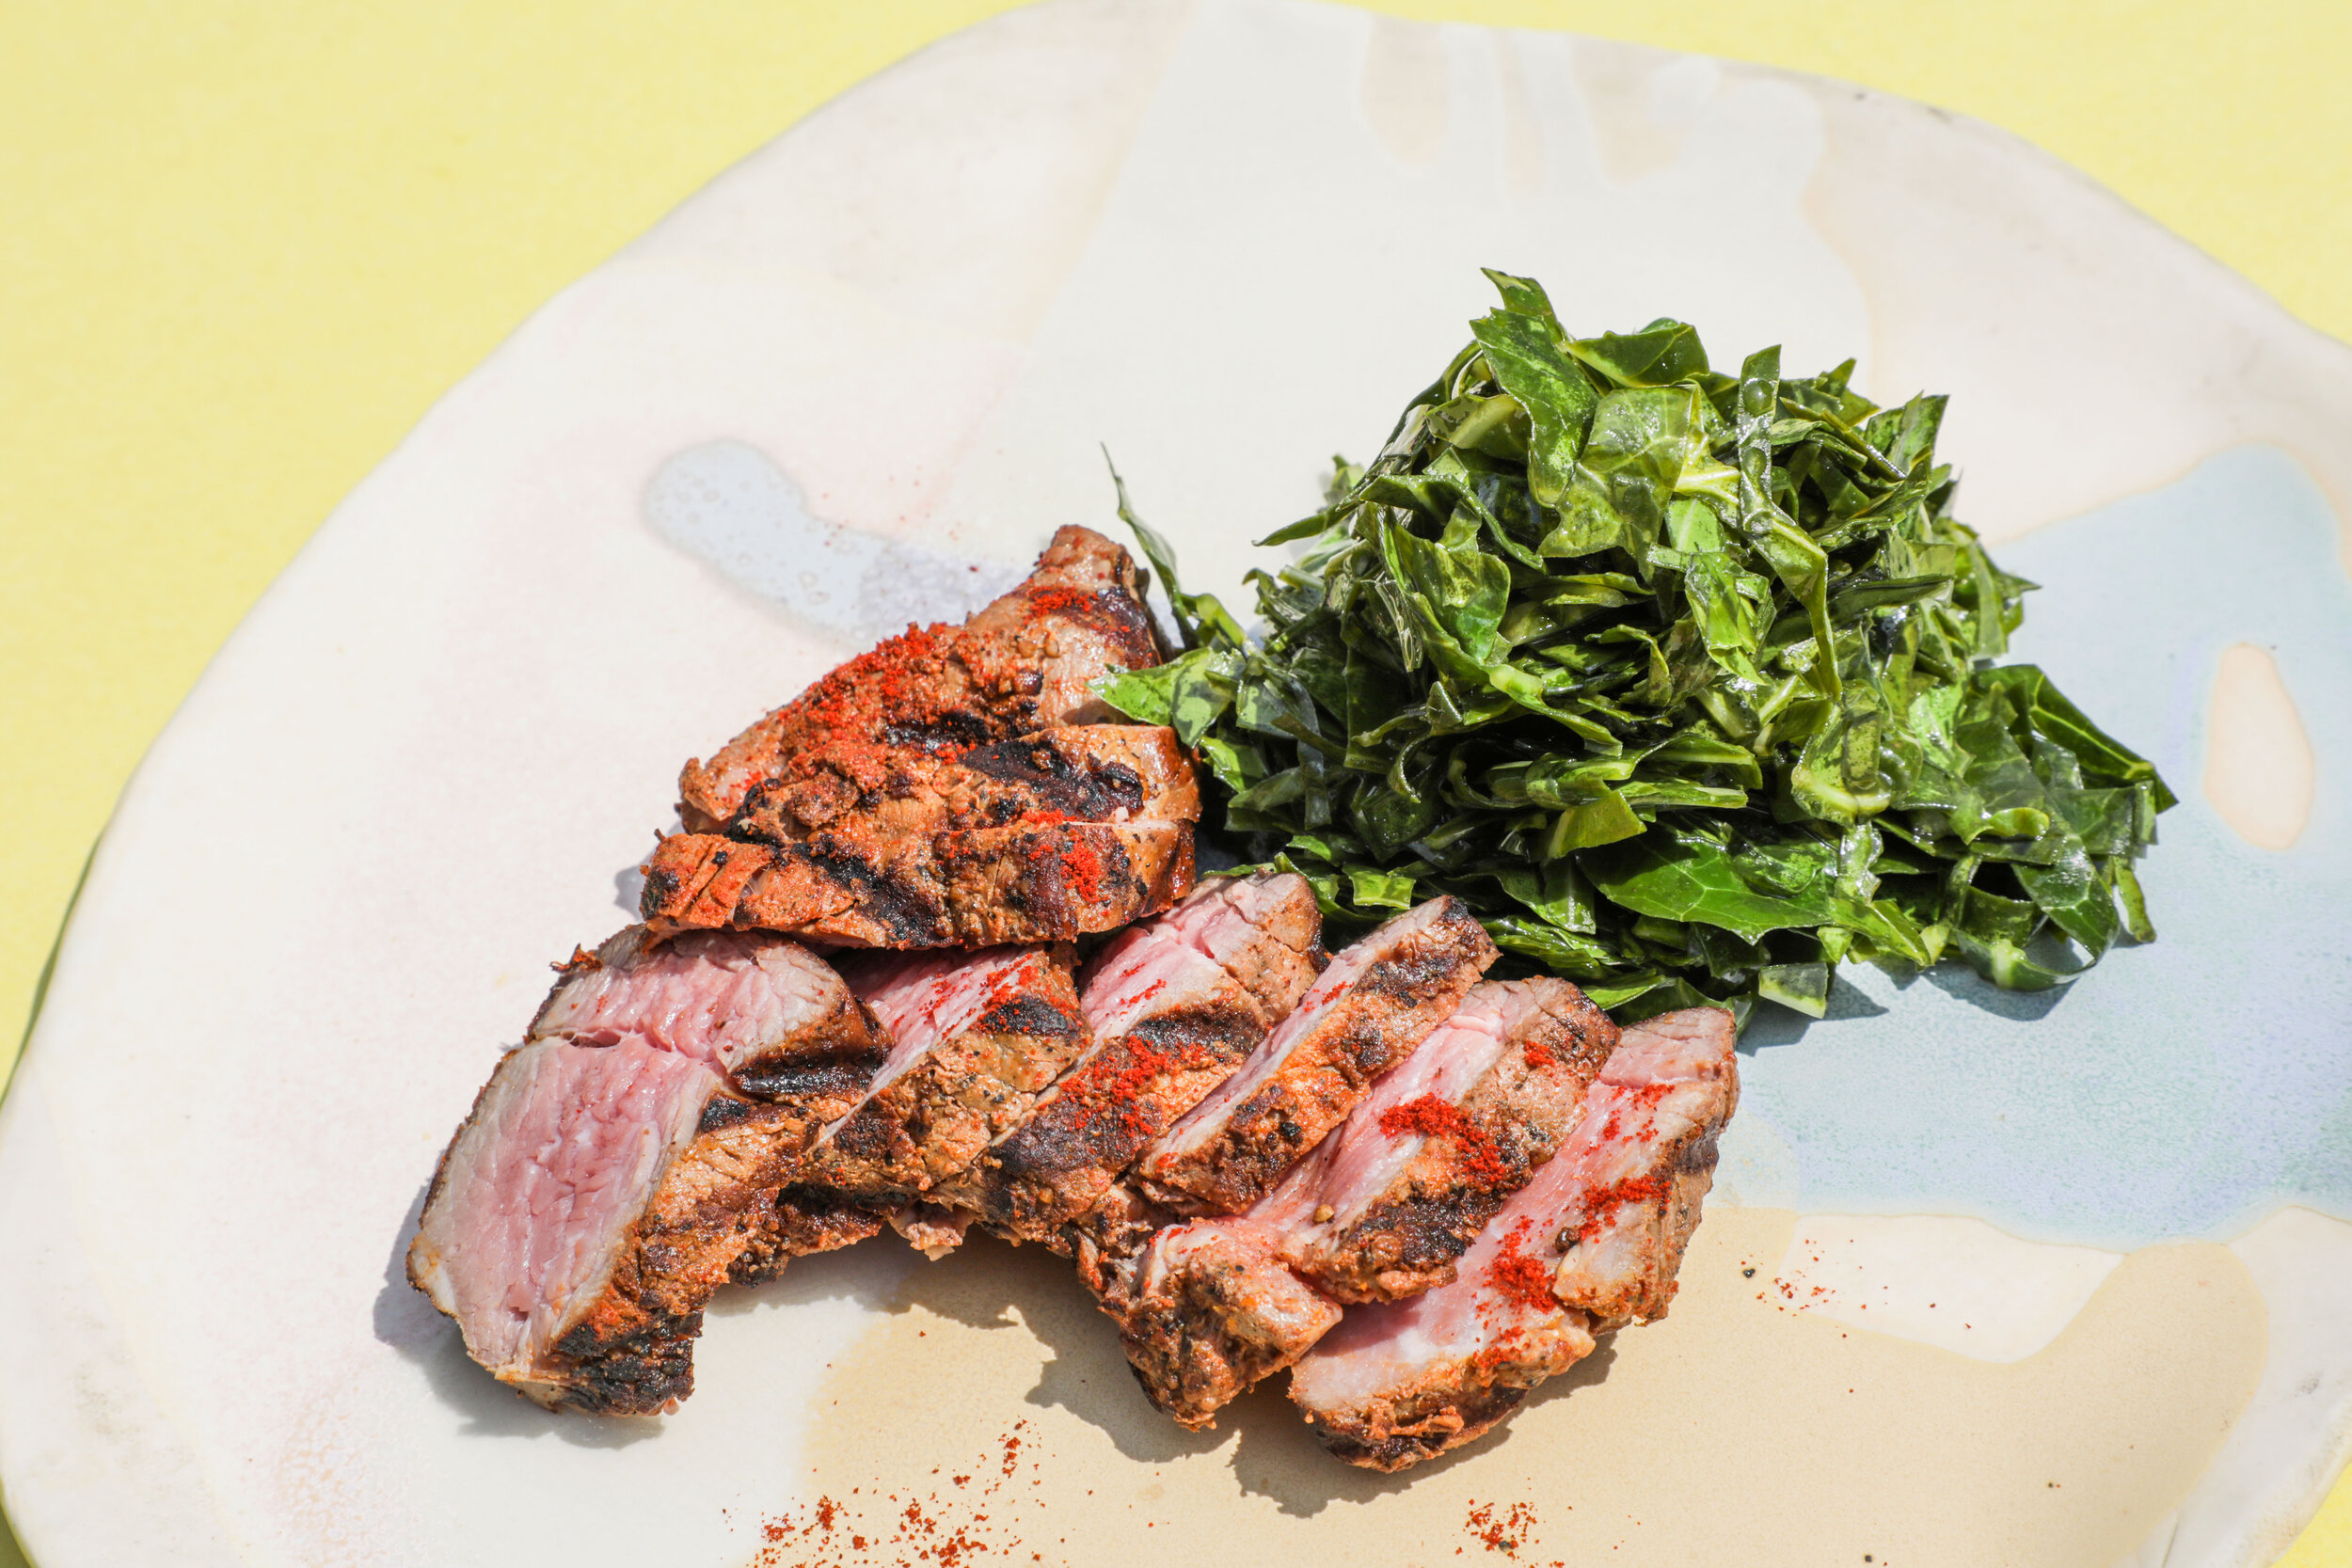 #MadeWithLocalRoots: Grilled Tri-tip with Chimichurri